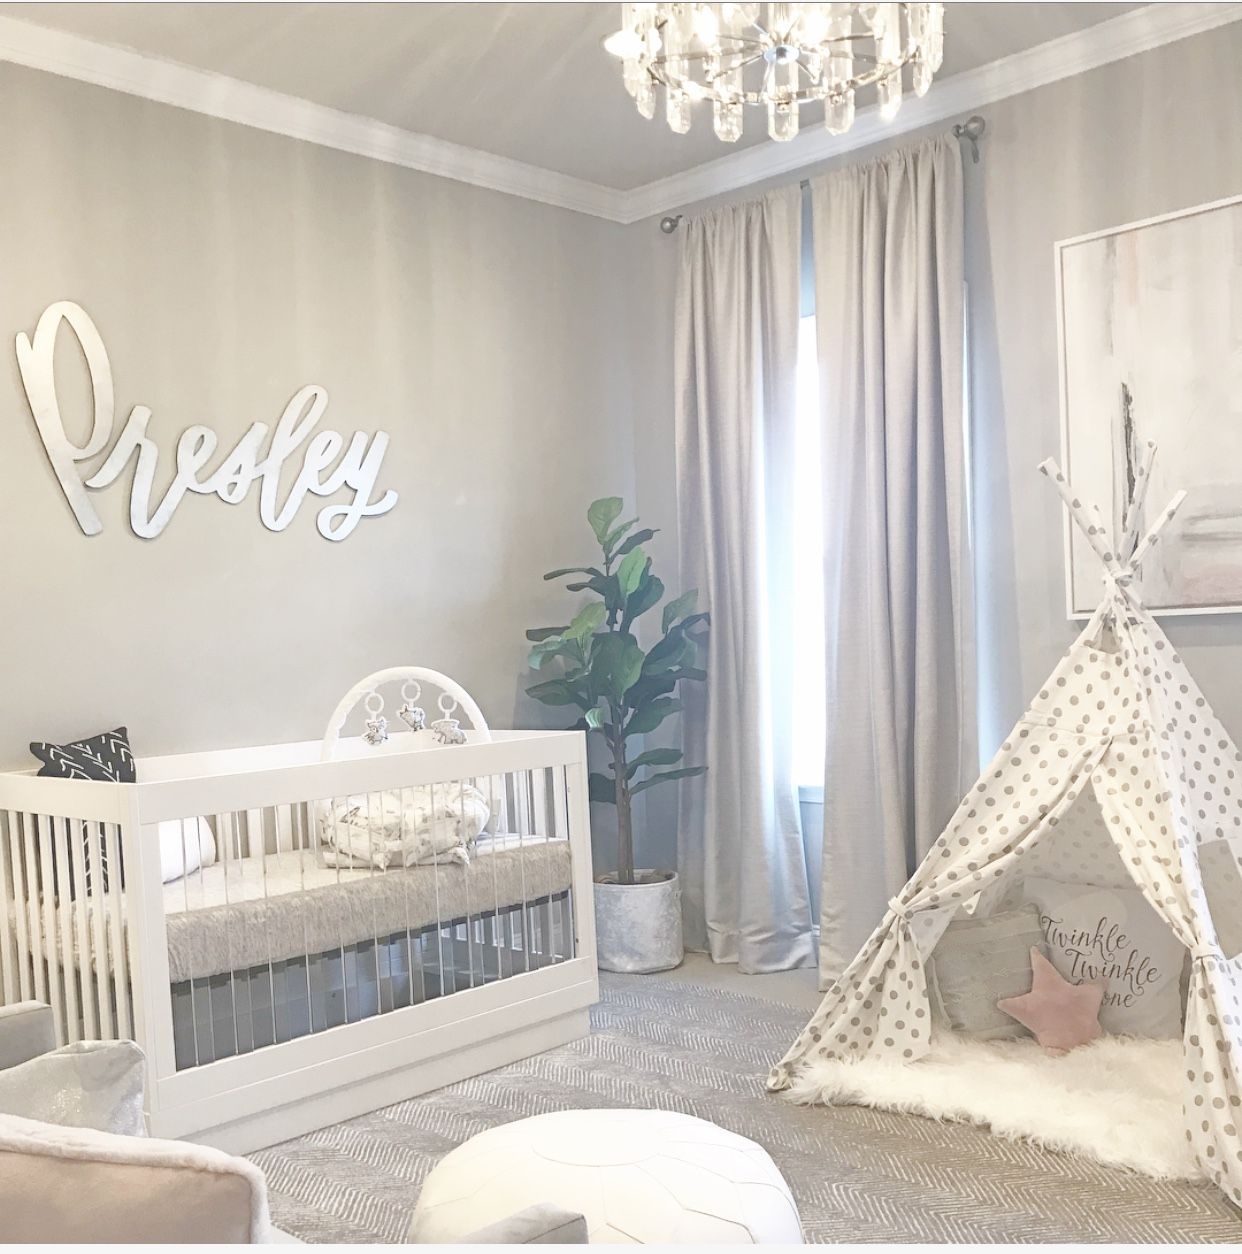 Presley (With images) | Nursery baby room, Baby nursery